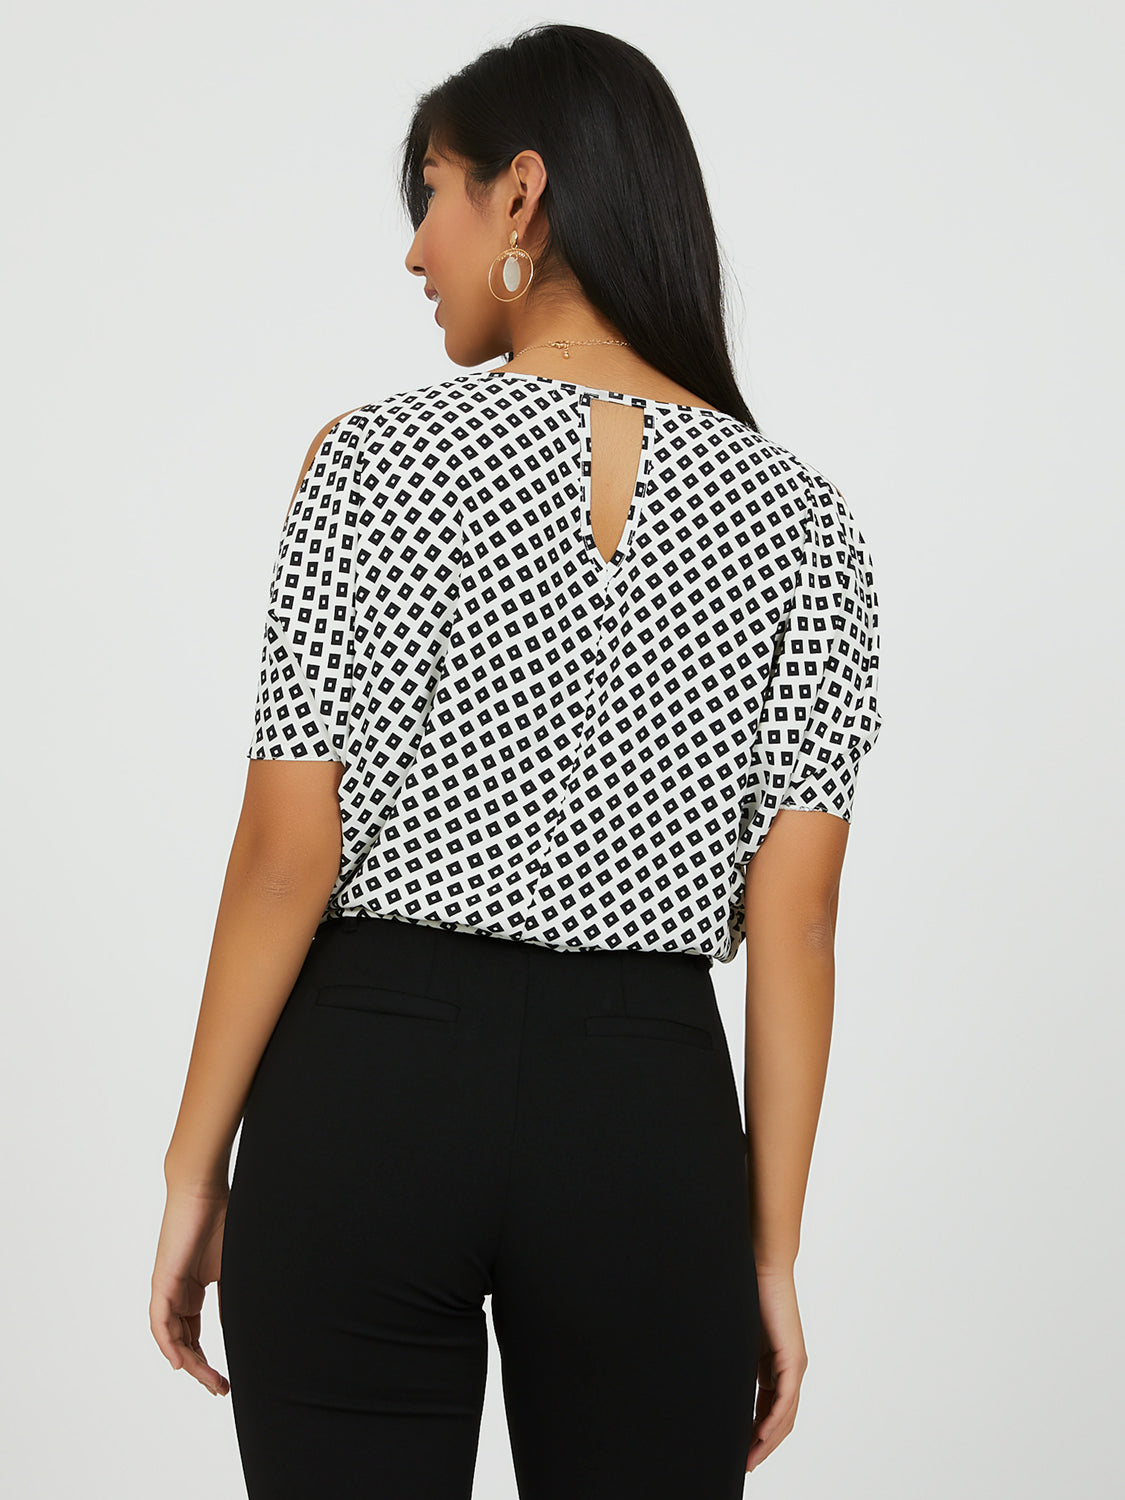 Geometric Monochrome Print Chiffon Top